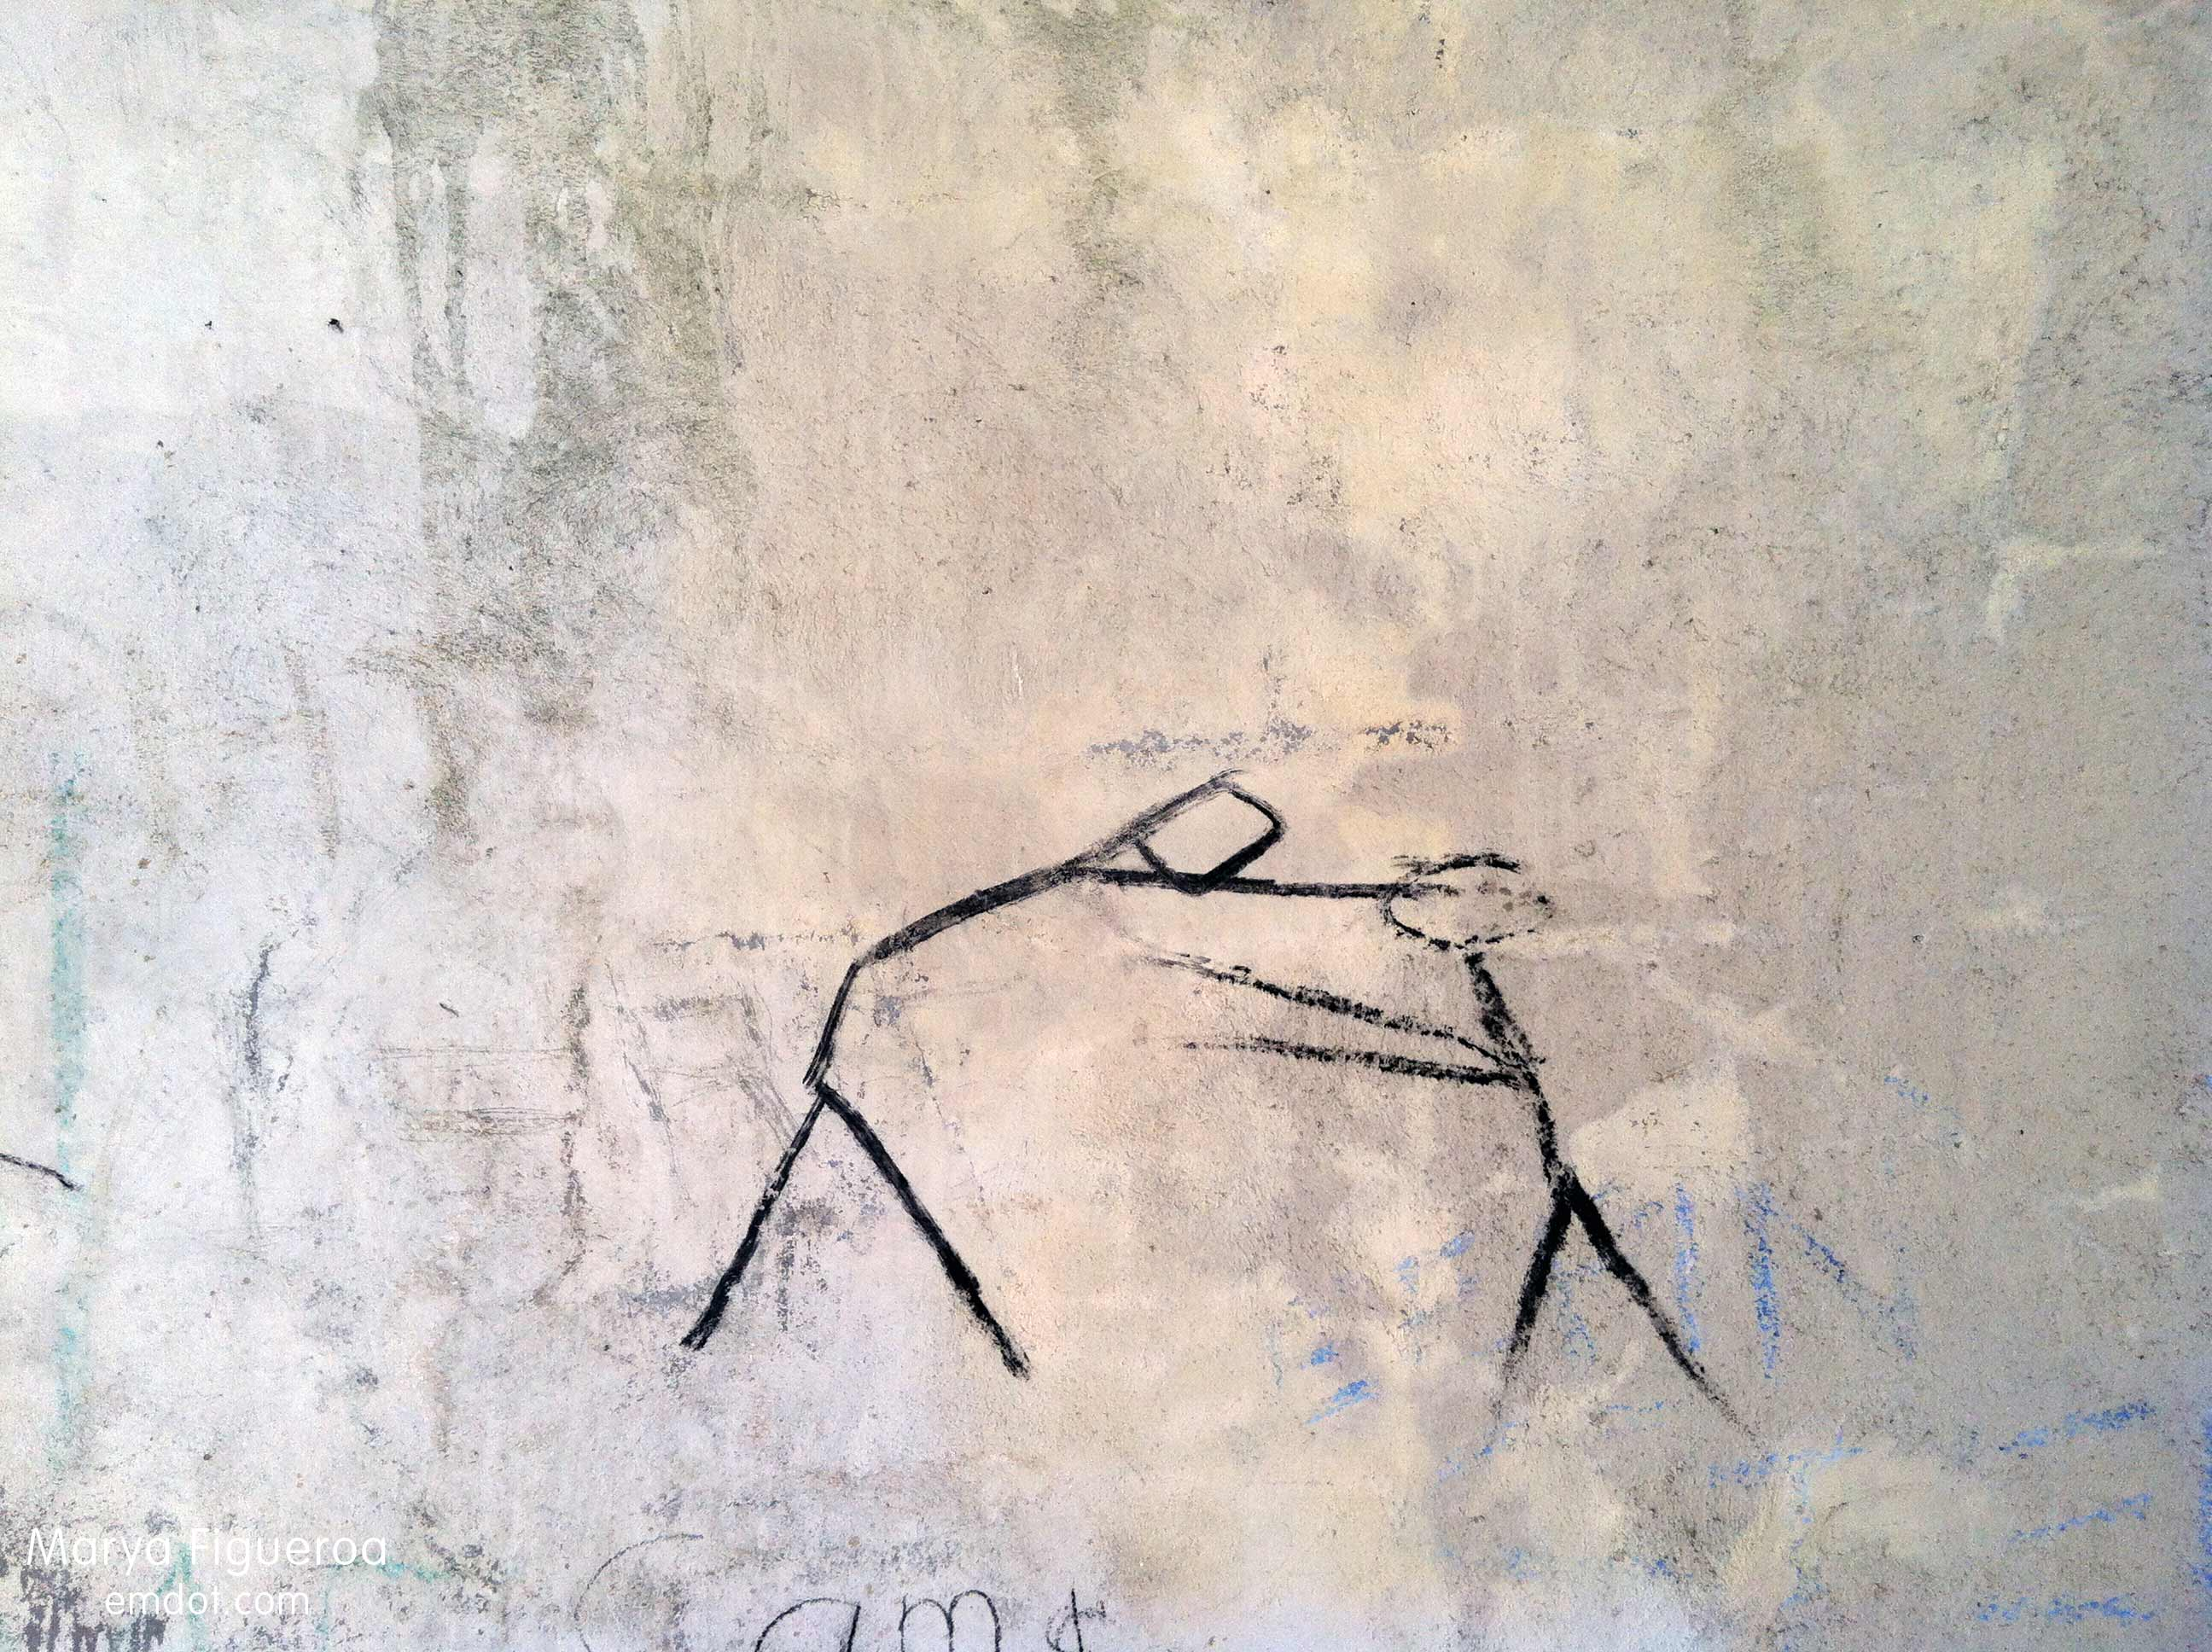 struggle graffiti